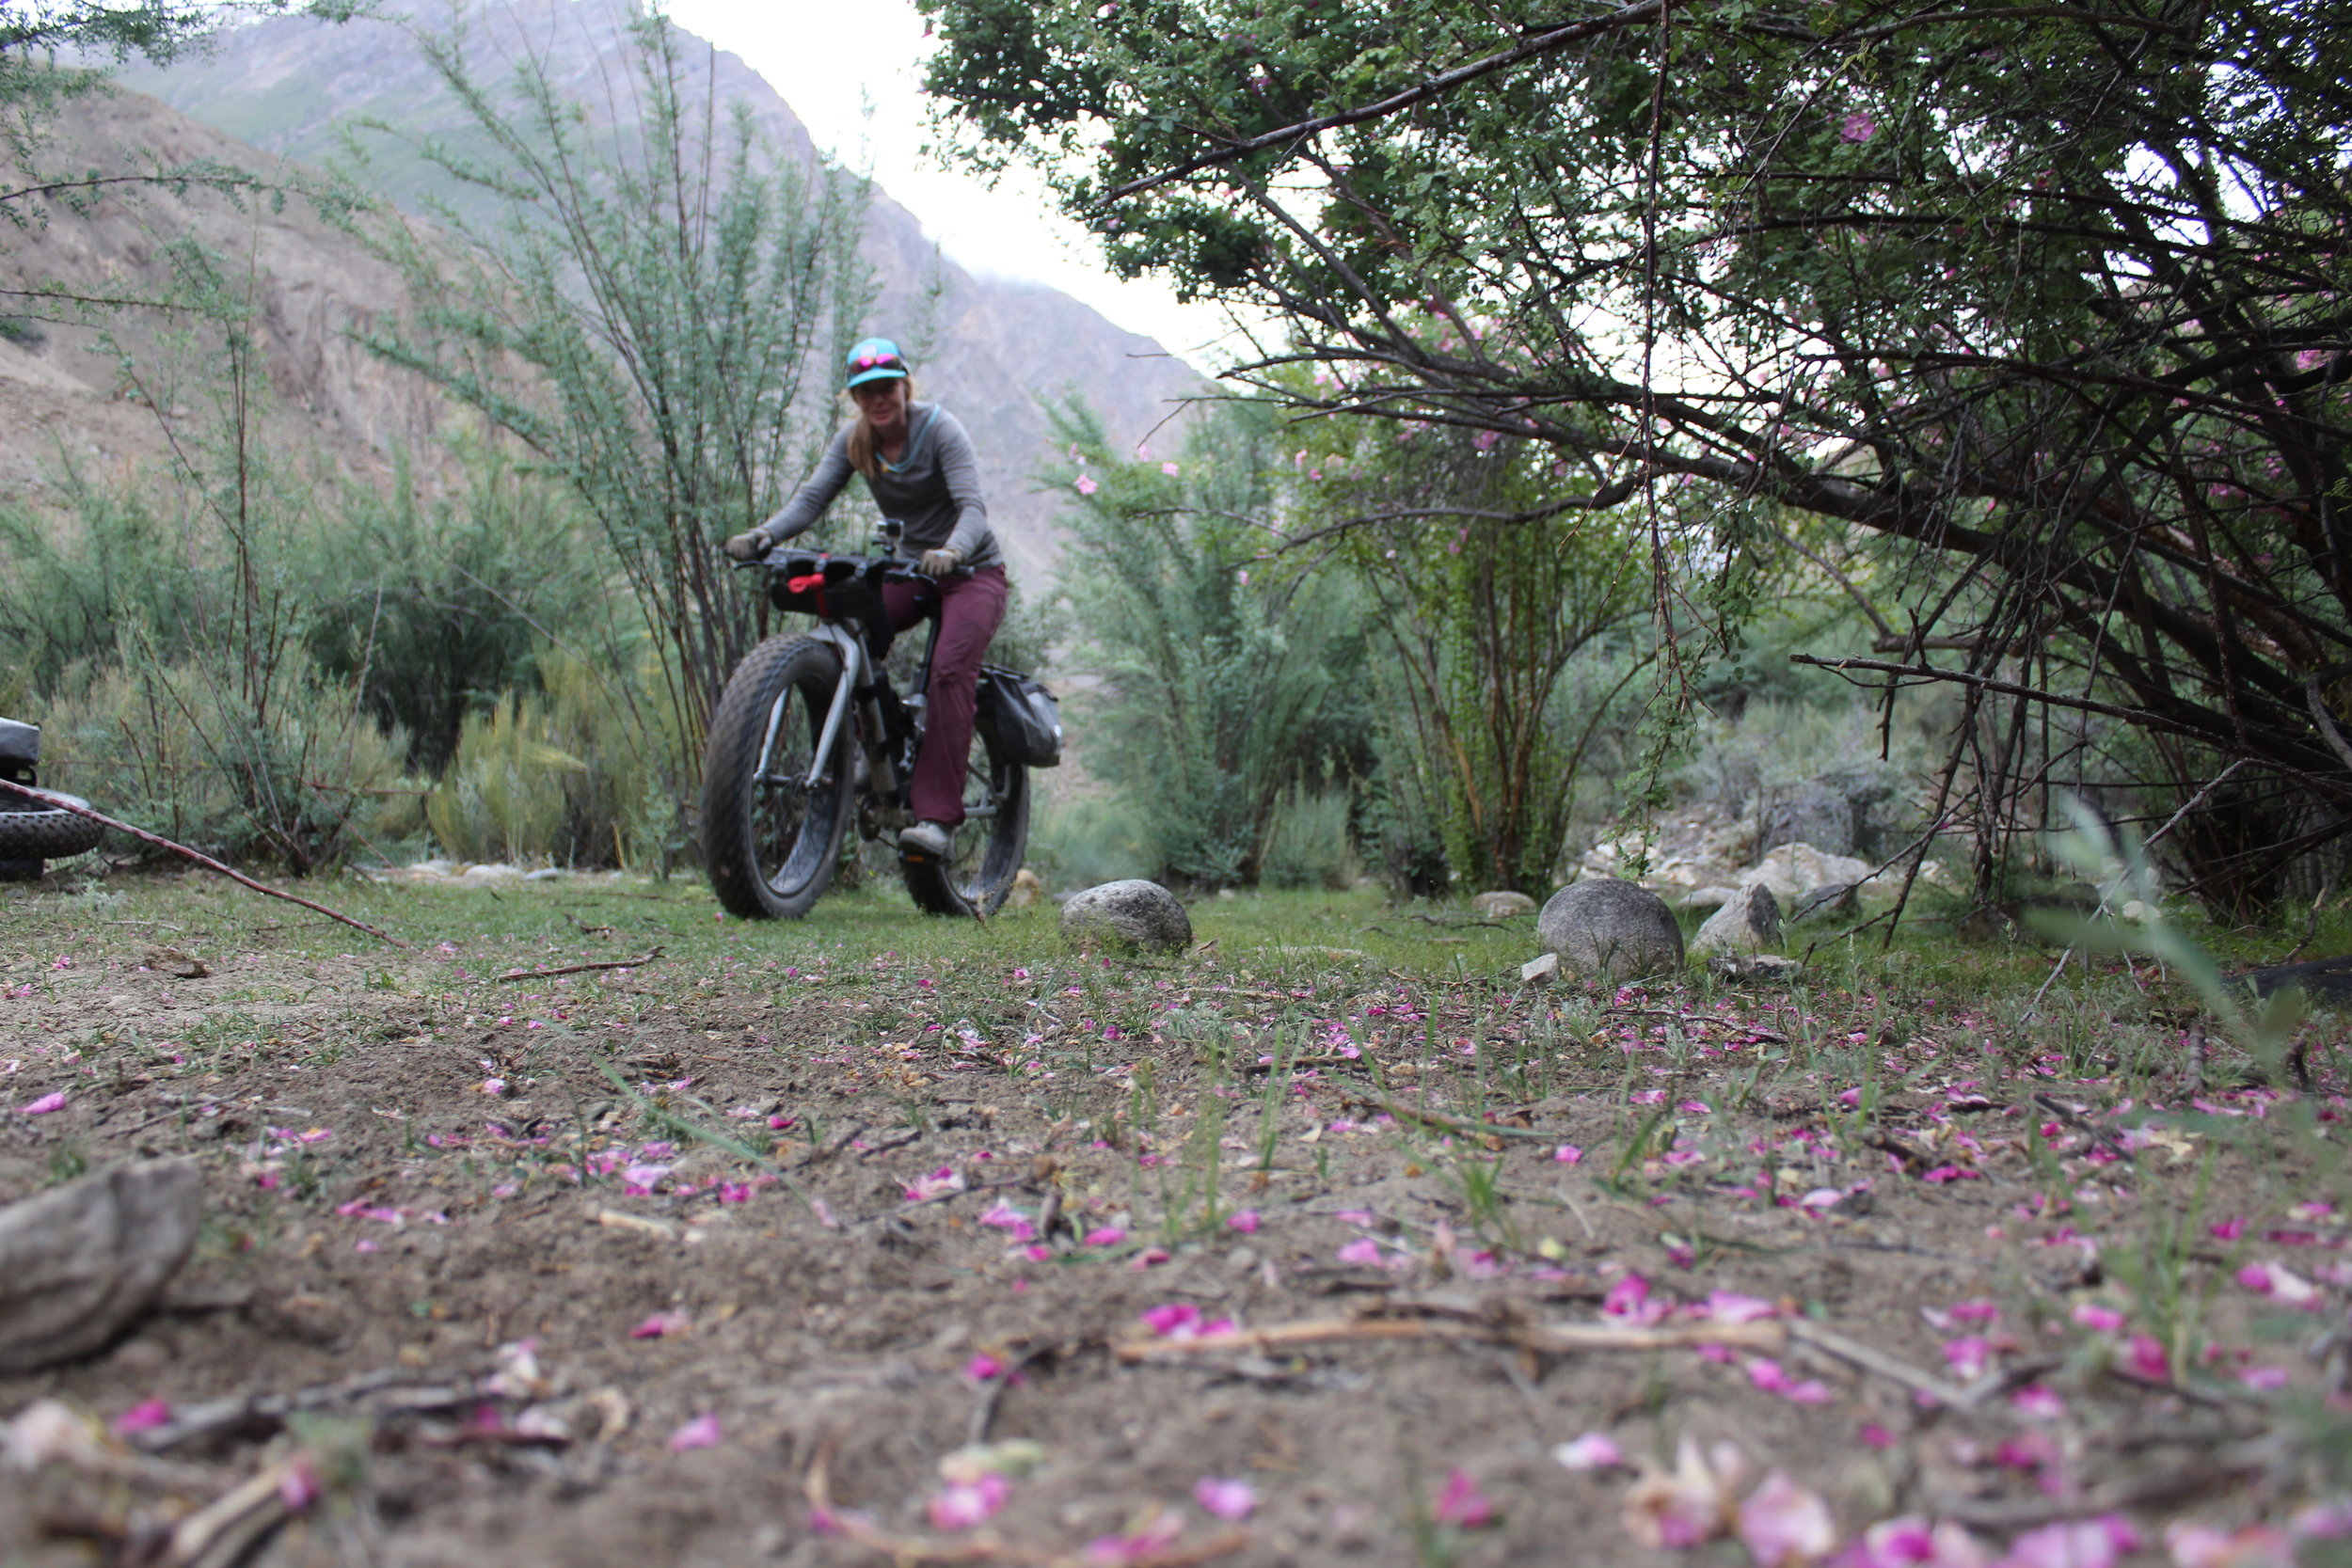 and this is what gave us flat tires outta all the gnar. Pretty rose petals with some thorns scattered in-between.